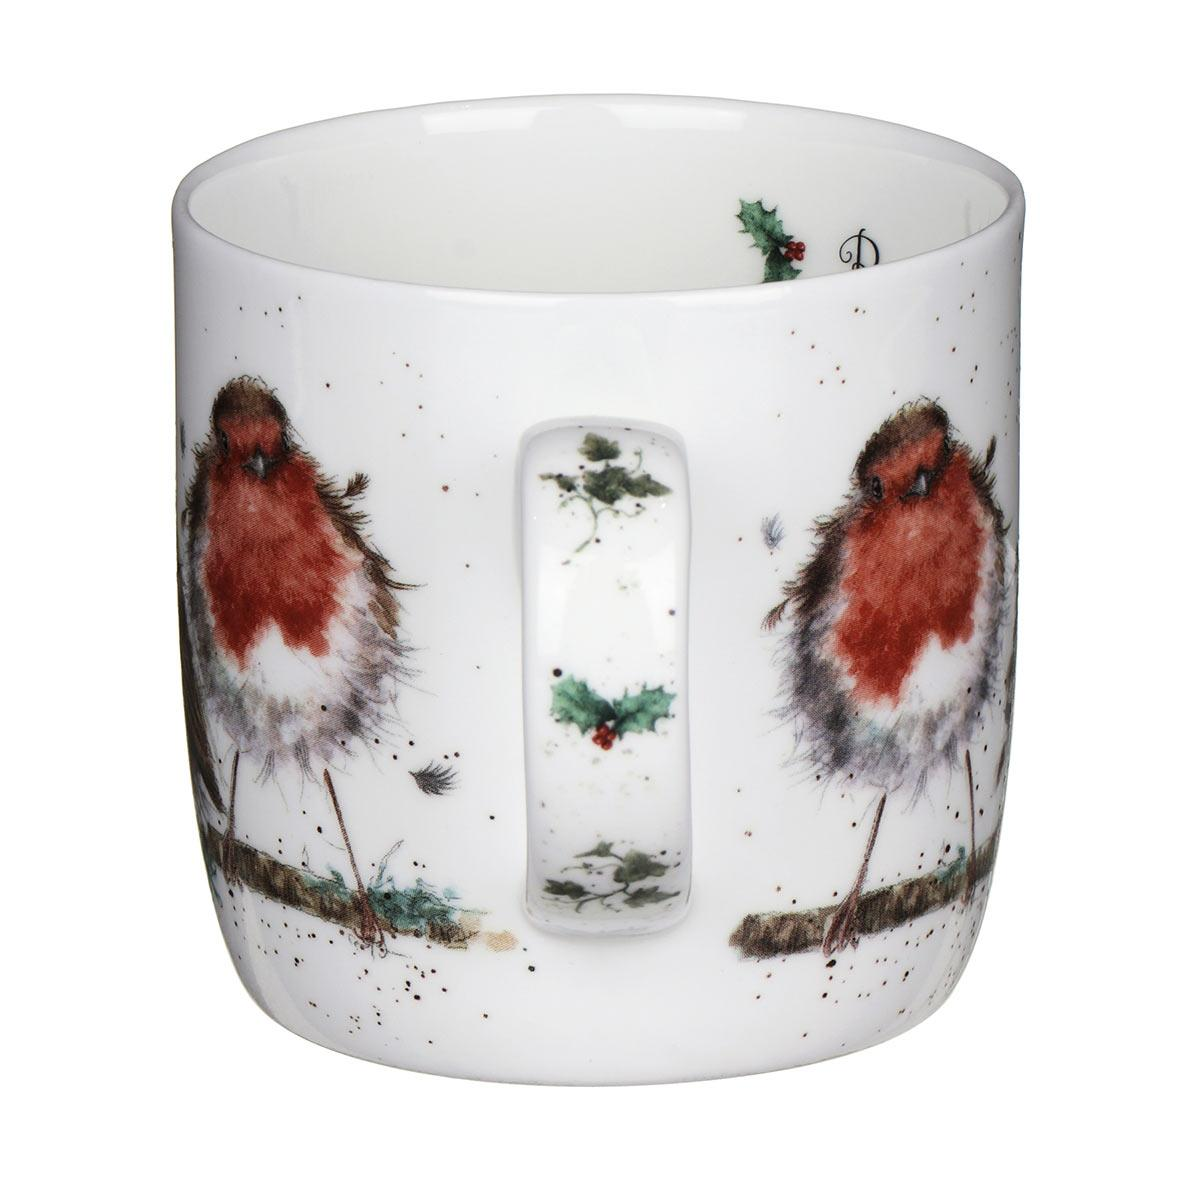 Wrendale Portmeirion Royal Worcester Christmas Mug Rockin Robins Handle